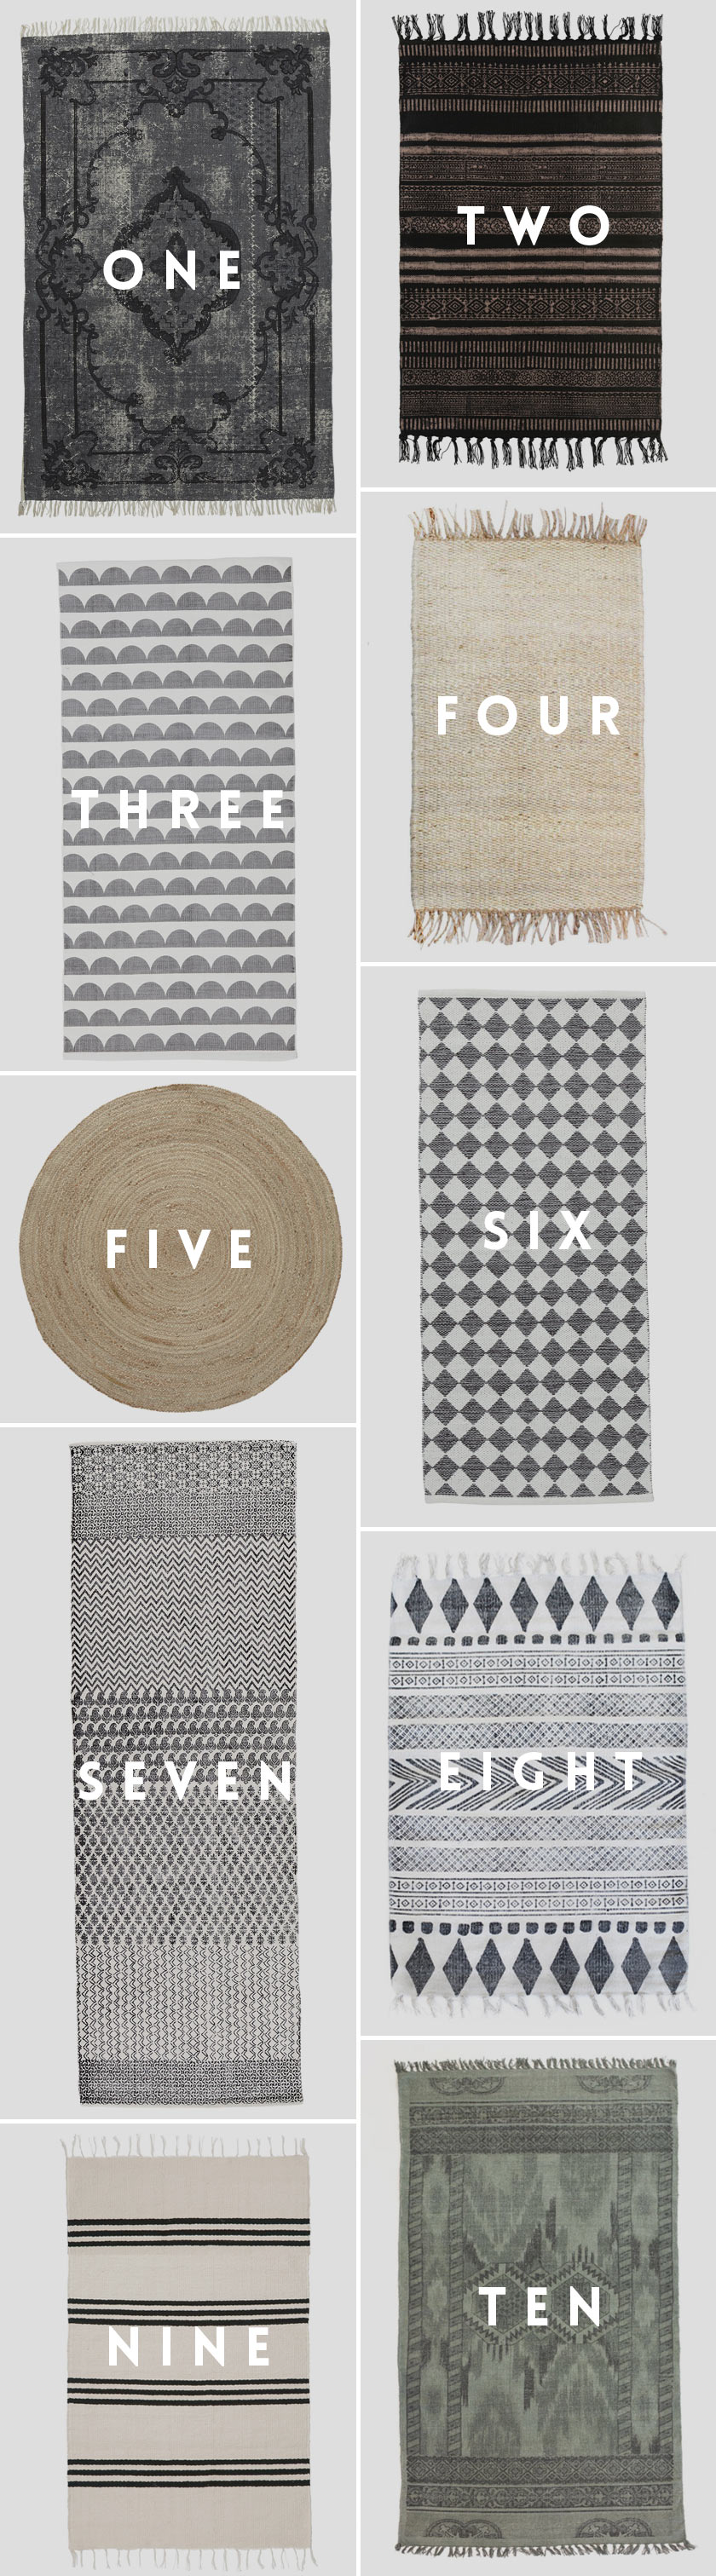 Inspiration_10_Rugs